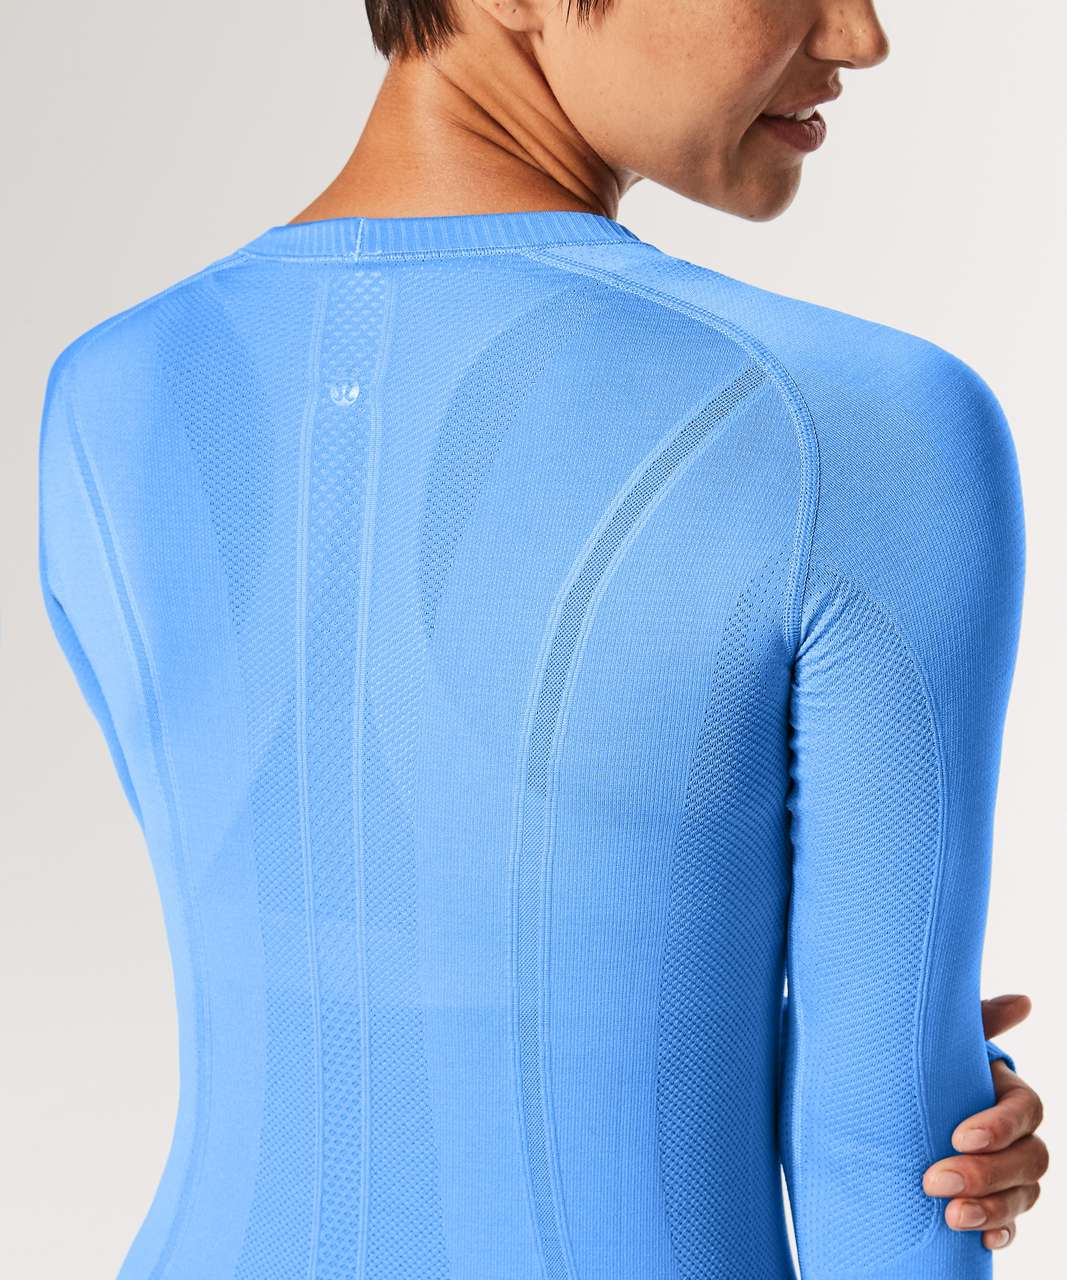 Lululemon Swiftly Tech Long Sleeve Crew - Aero Blue / Aero Blue